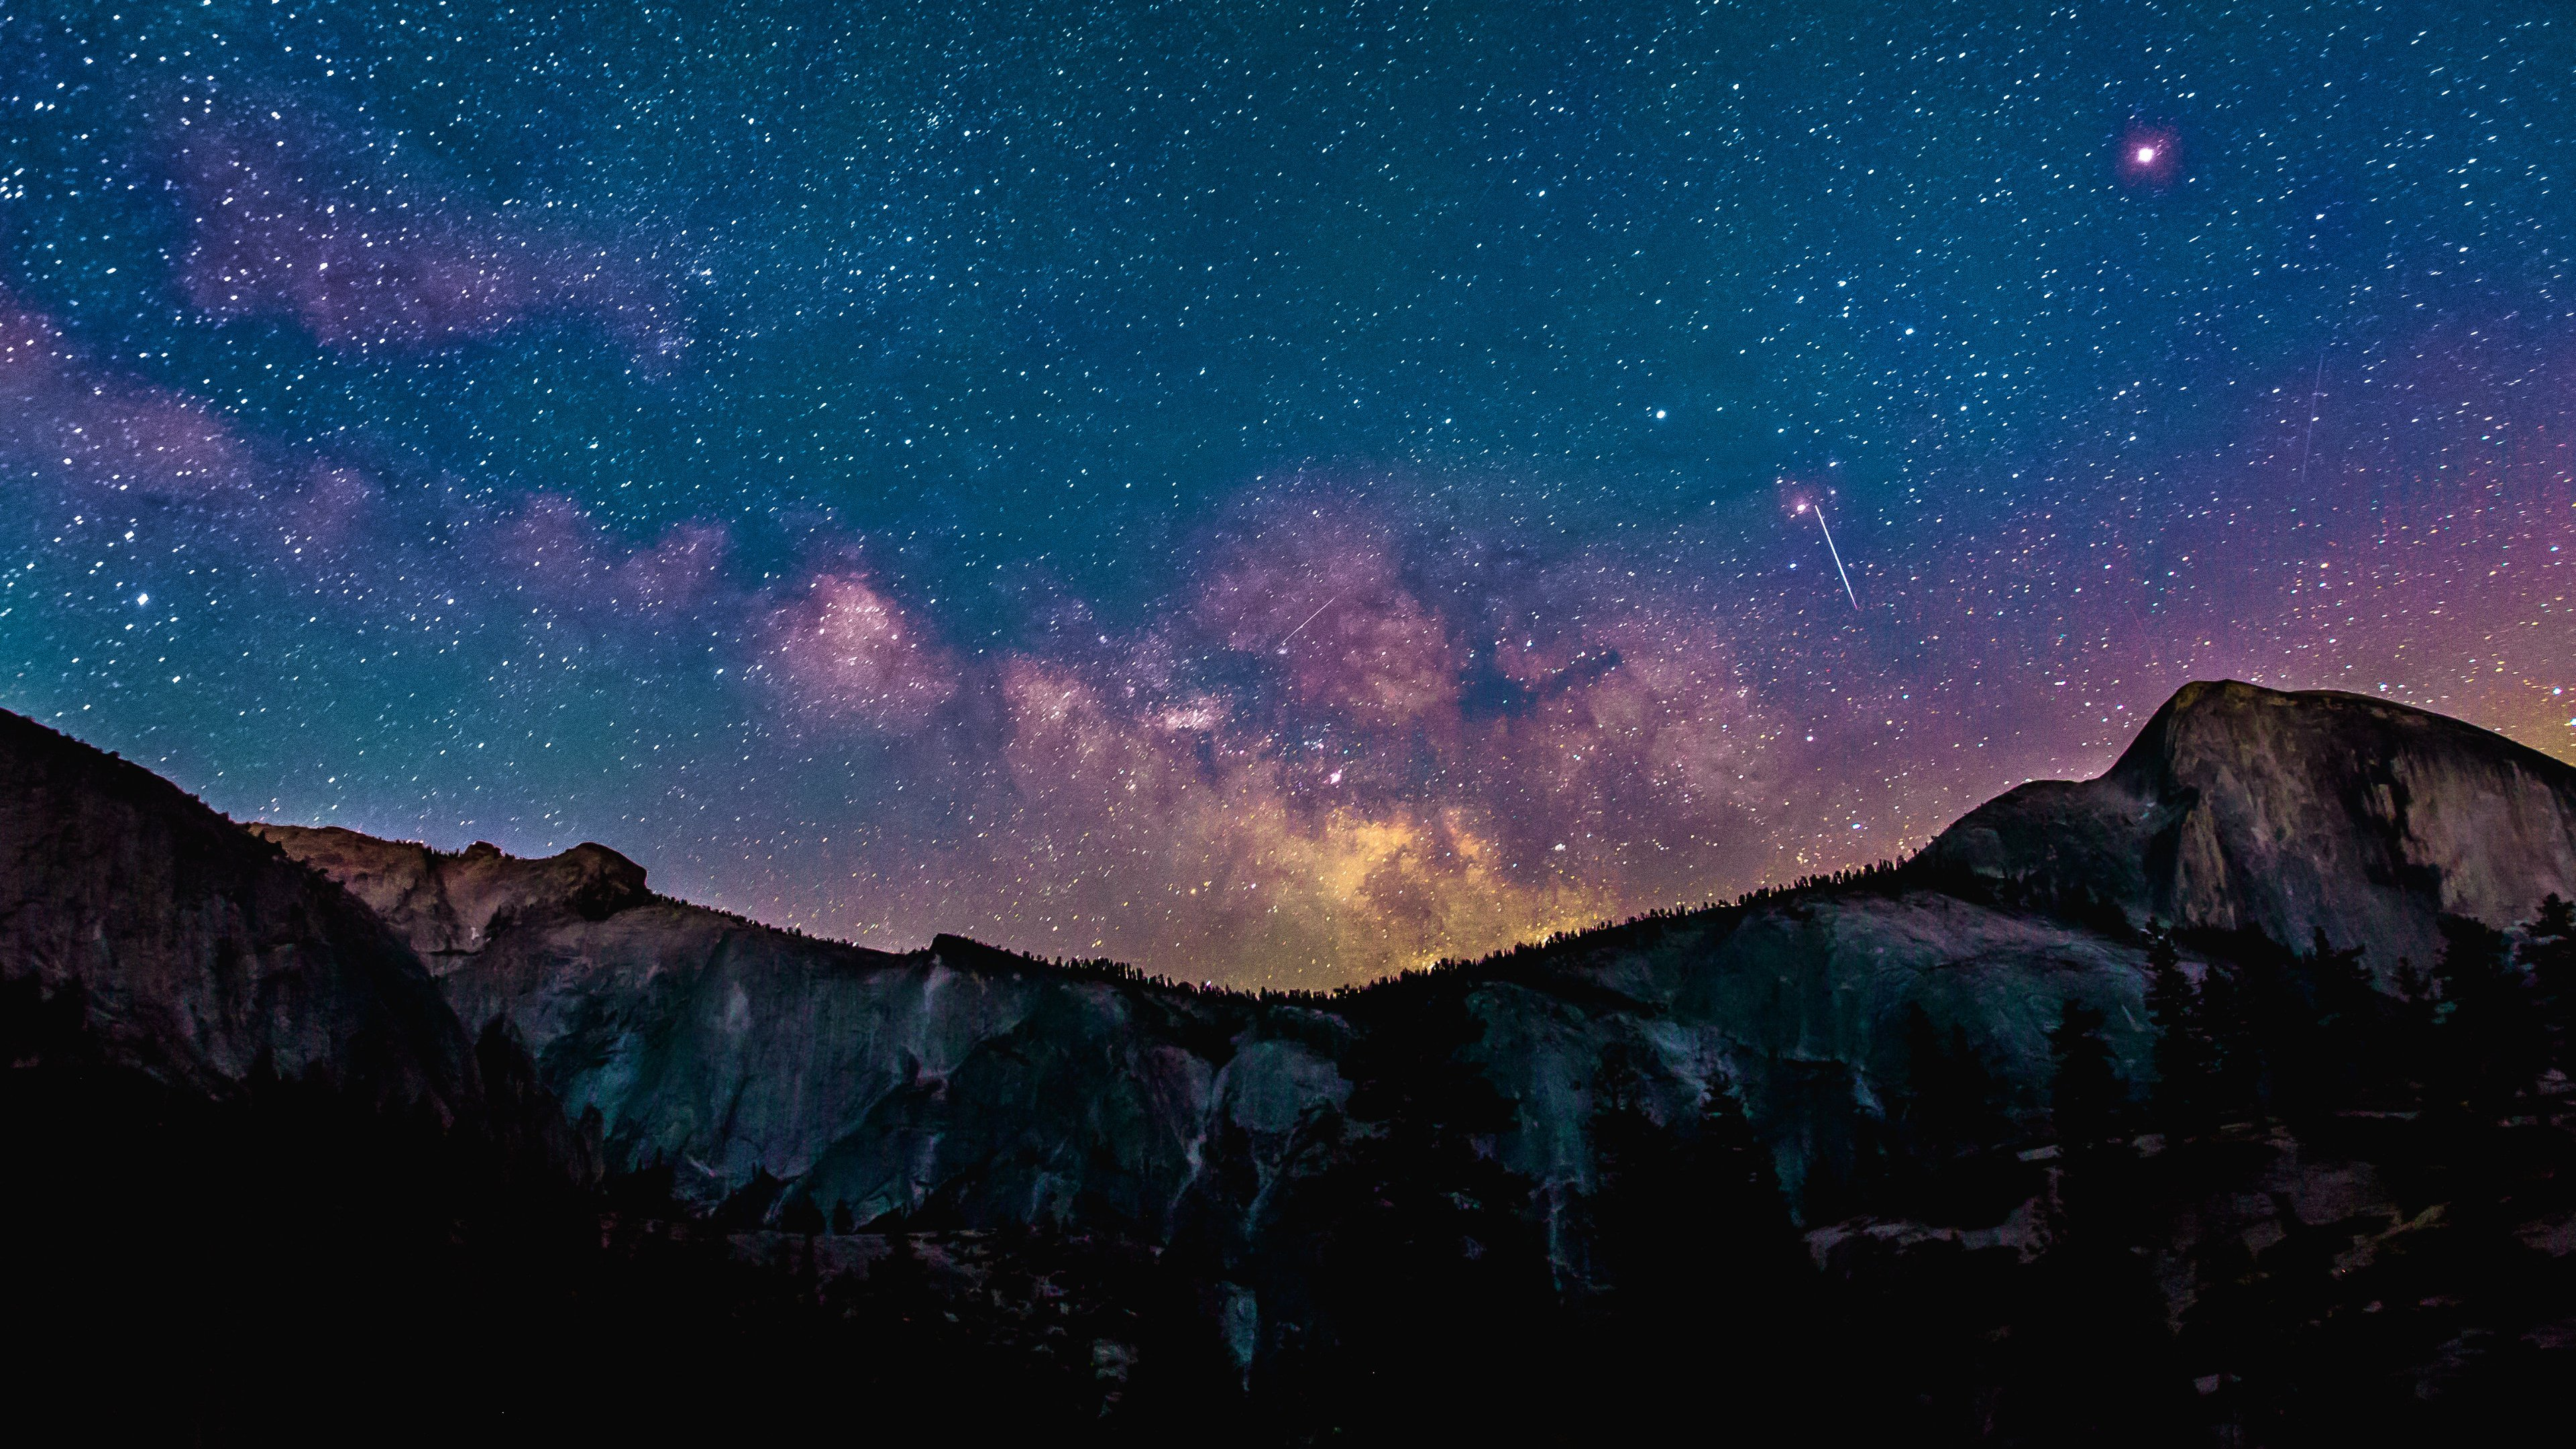 Milky Way Over Mountains Wallpaper